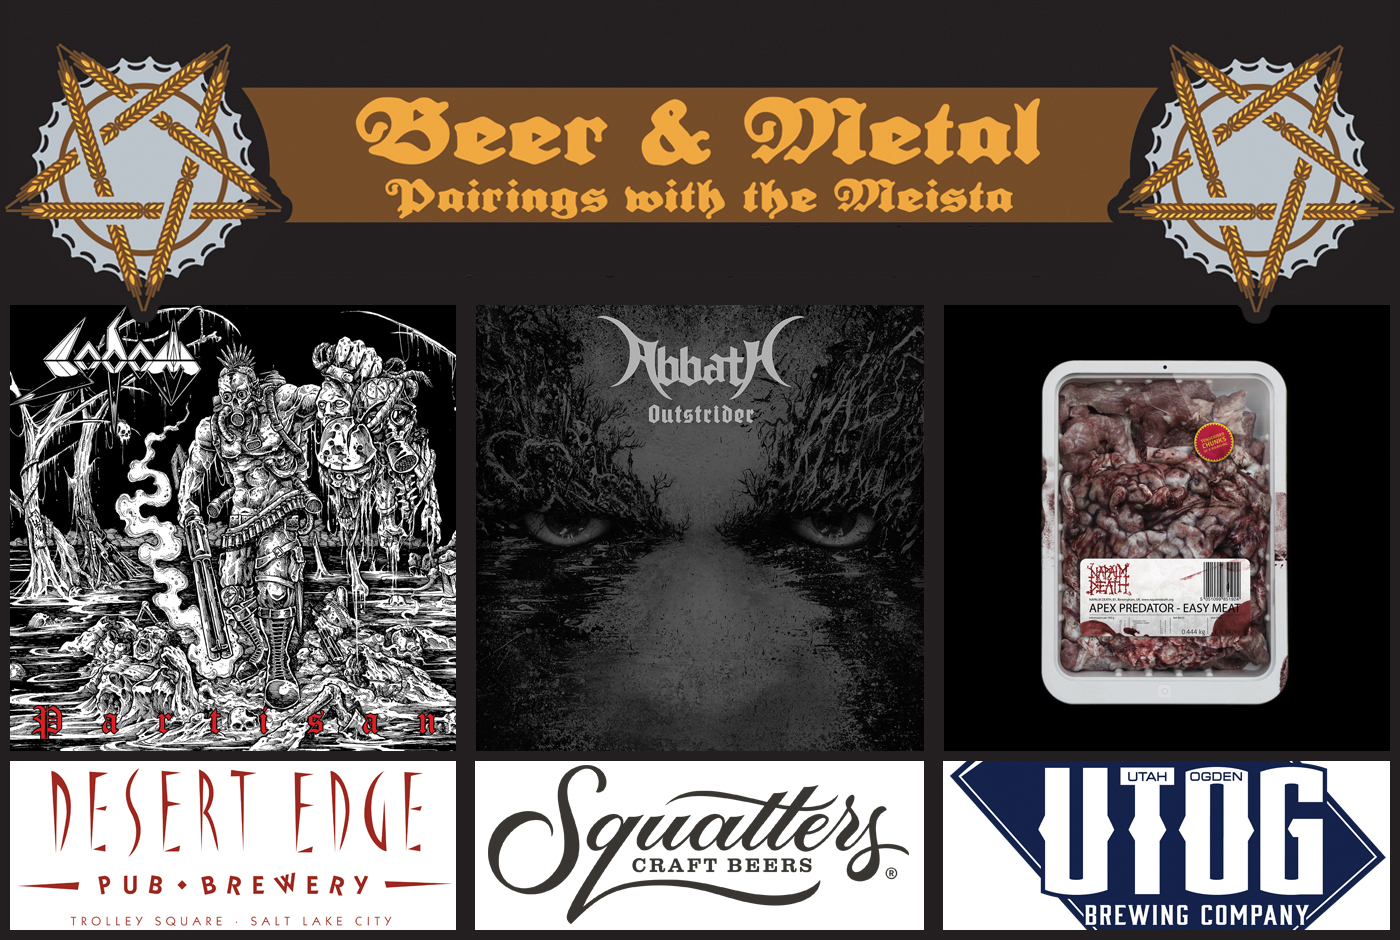 Beer and music go together, but beer and metal are almost meant to be—and that's what we're doing here with the help of The Meista.